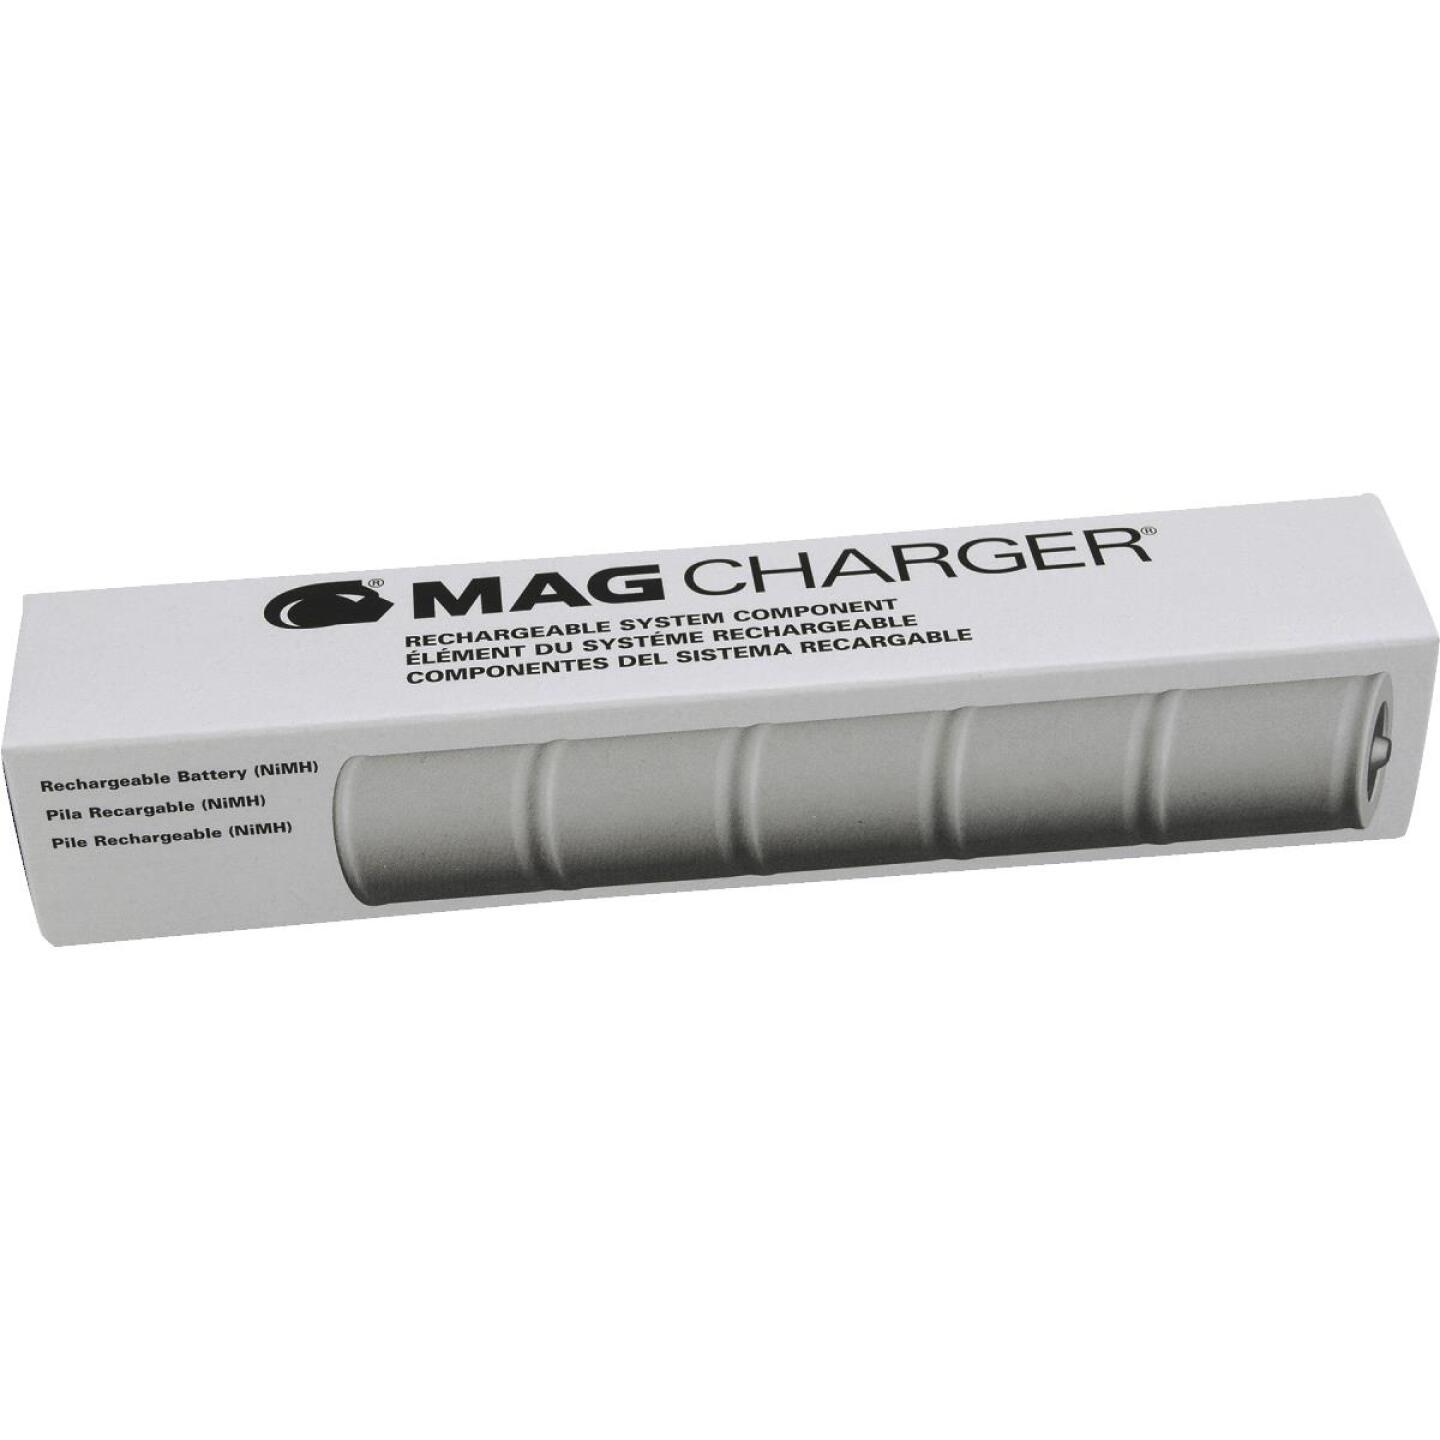 Maglite 6V NiMH Rechargeable Flashlight Battery Image 1